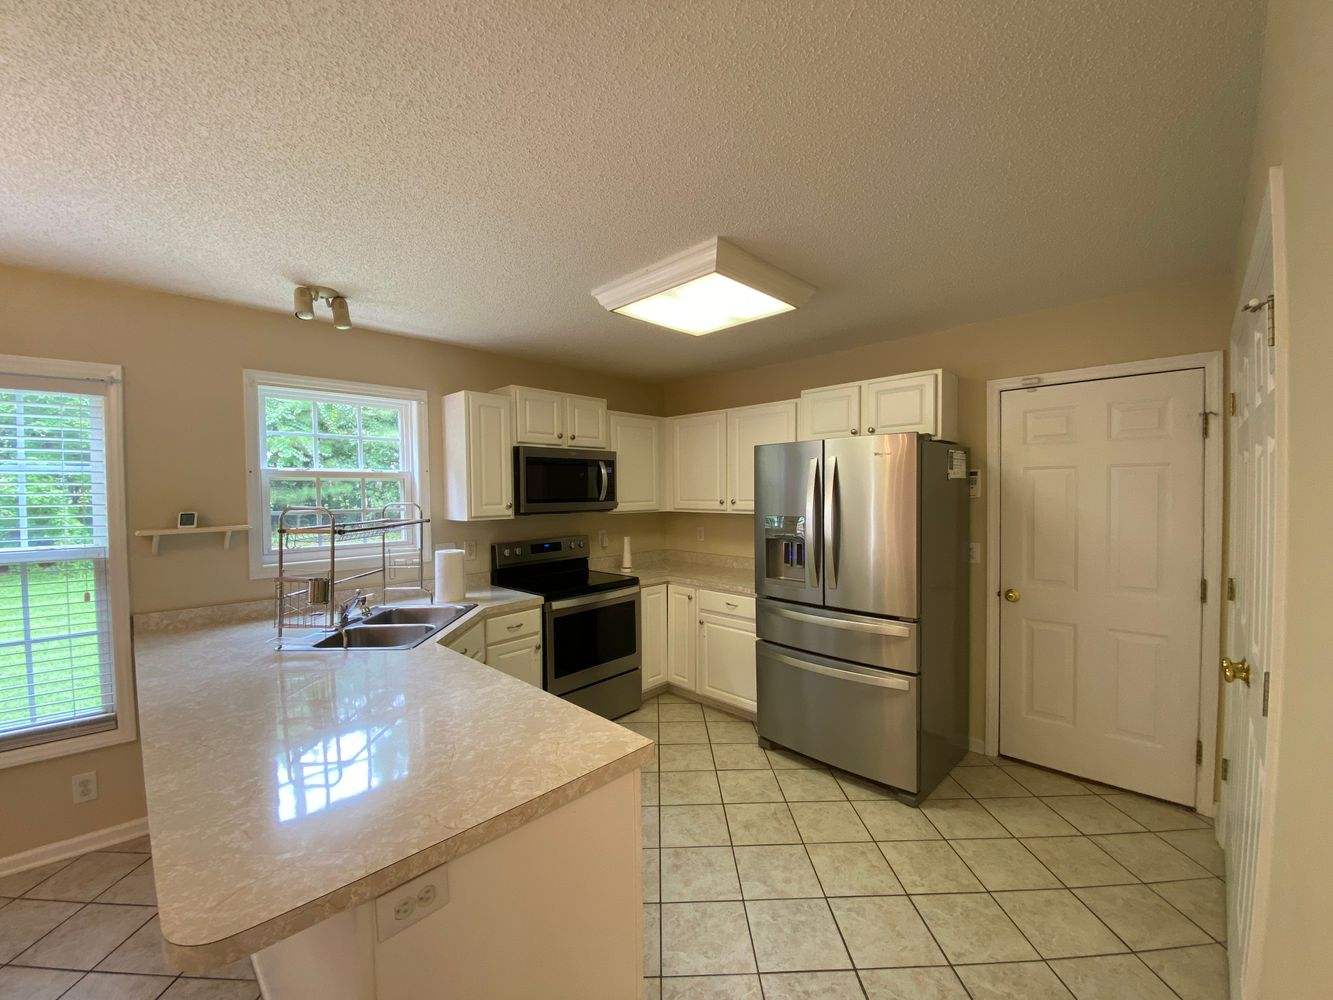 Alcove: Bedrooms for rent at 1305 Ujamaa Dr, Raleigh NC 27610